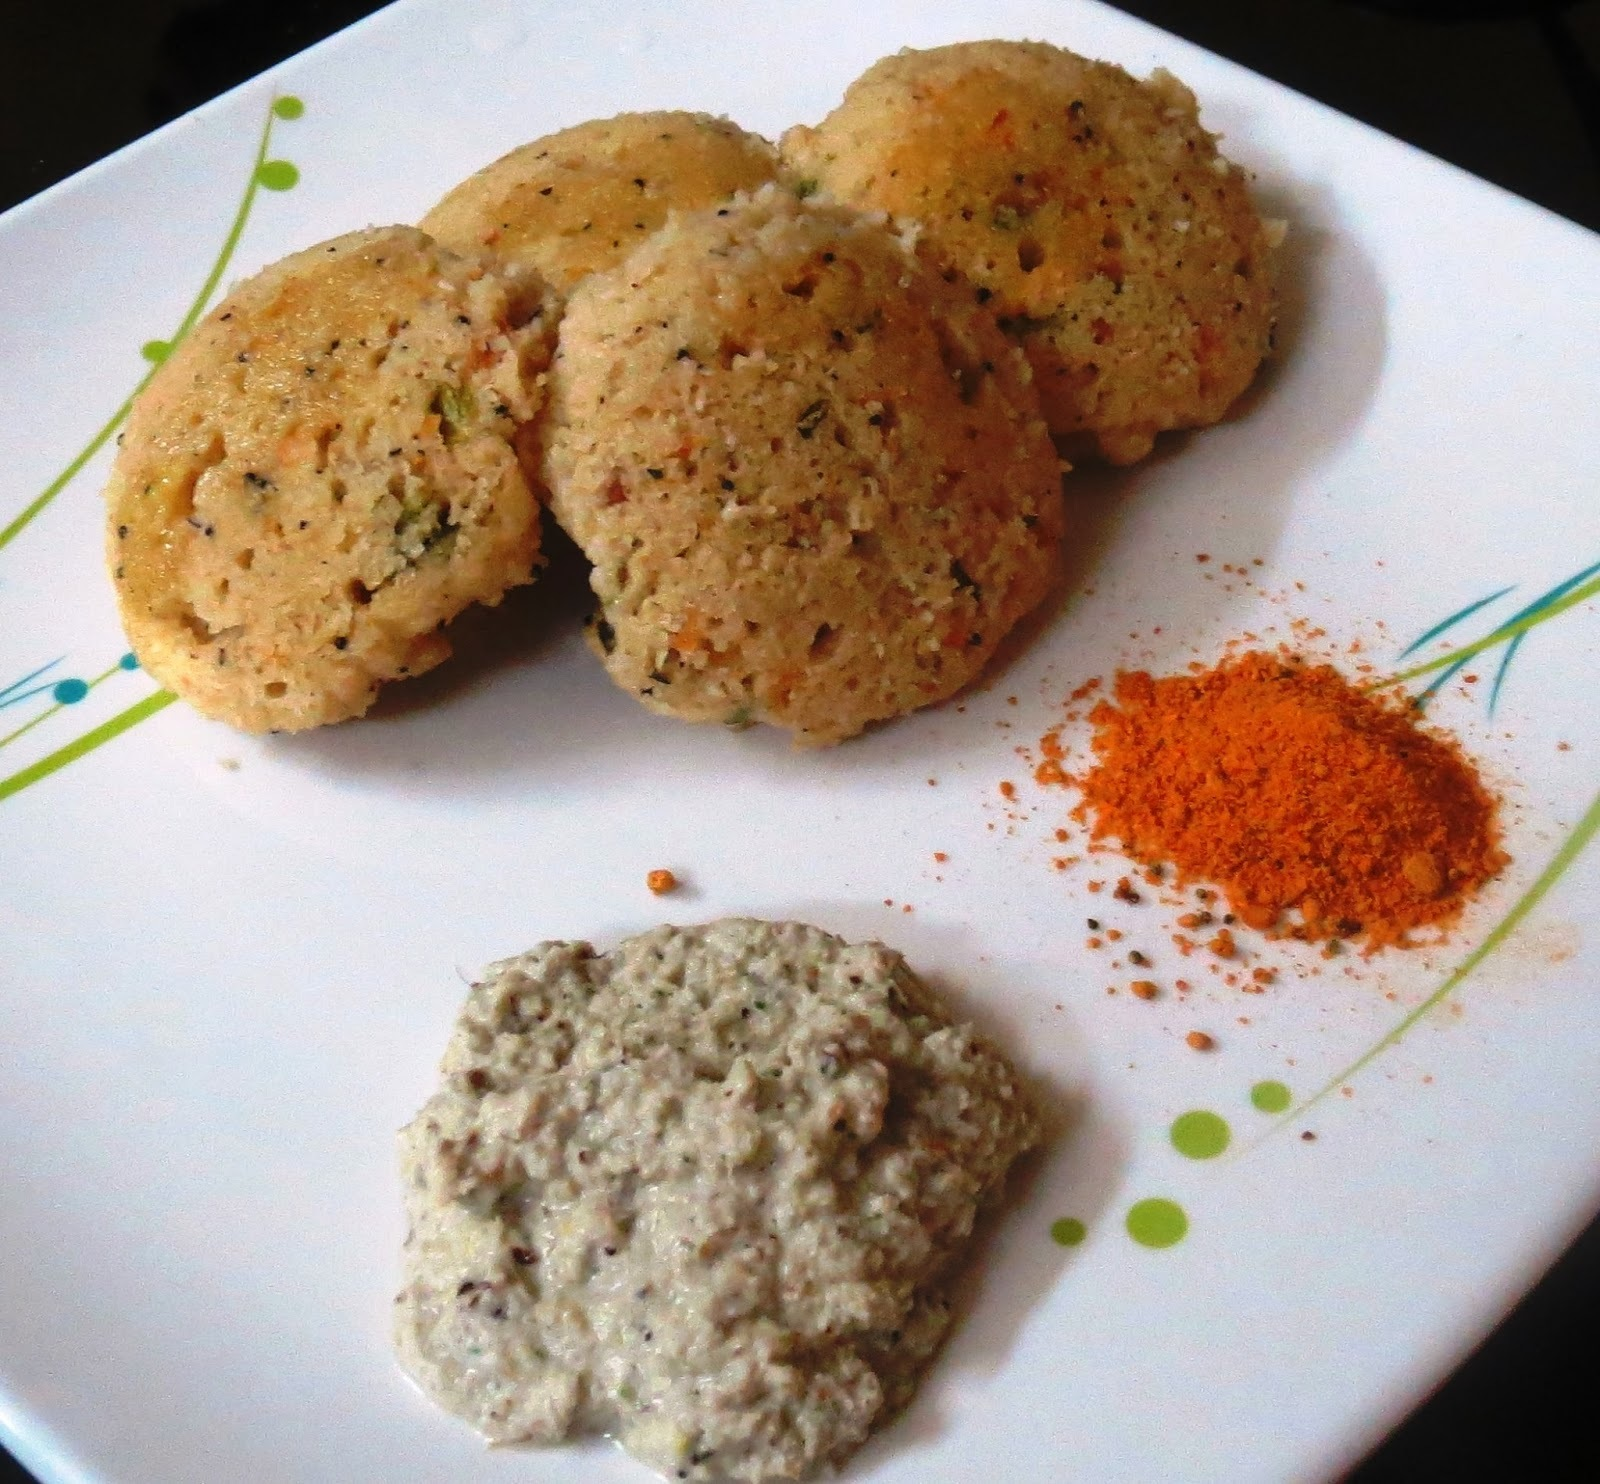 Oats - Rava Idli with Ground Nut Chutney